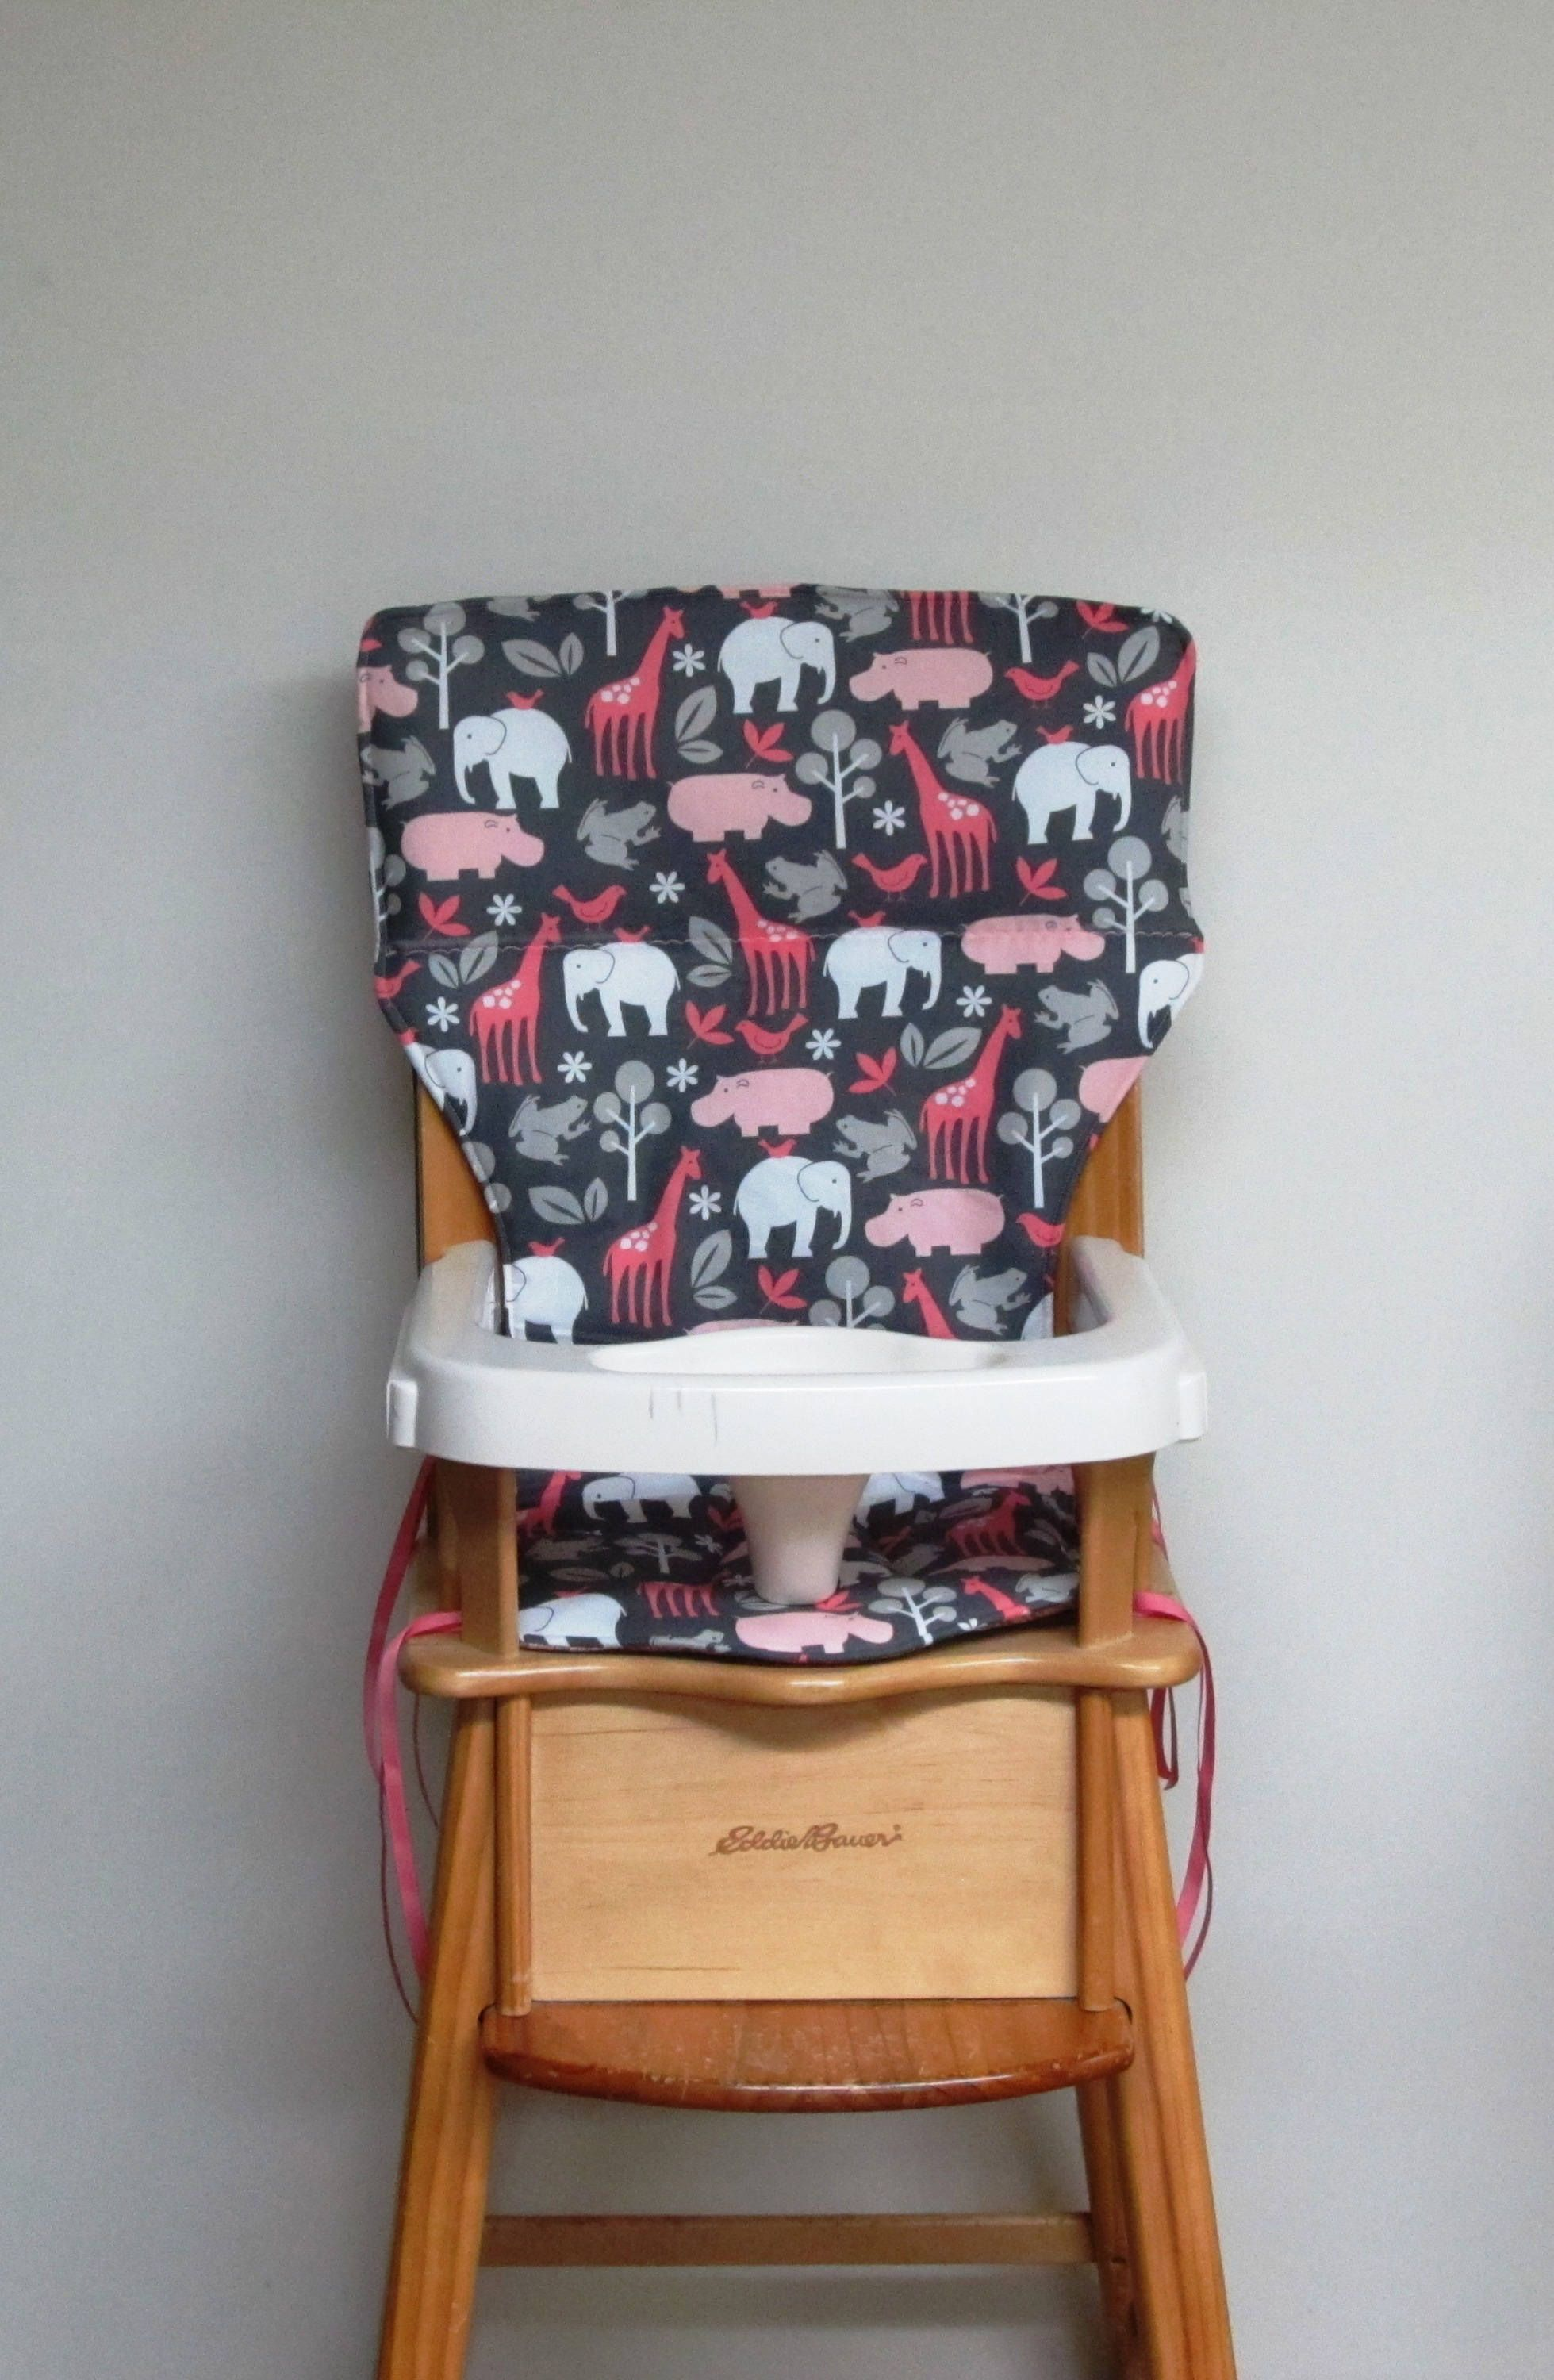 Eddie Bauer Replacement Highchair Cover, Childrens Chair Pad, Kids Furniture,  Baby Accessory Care